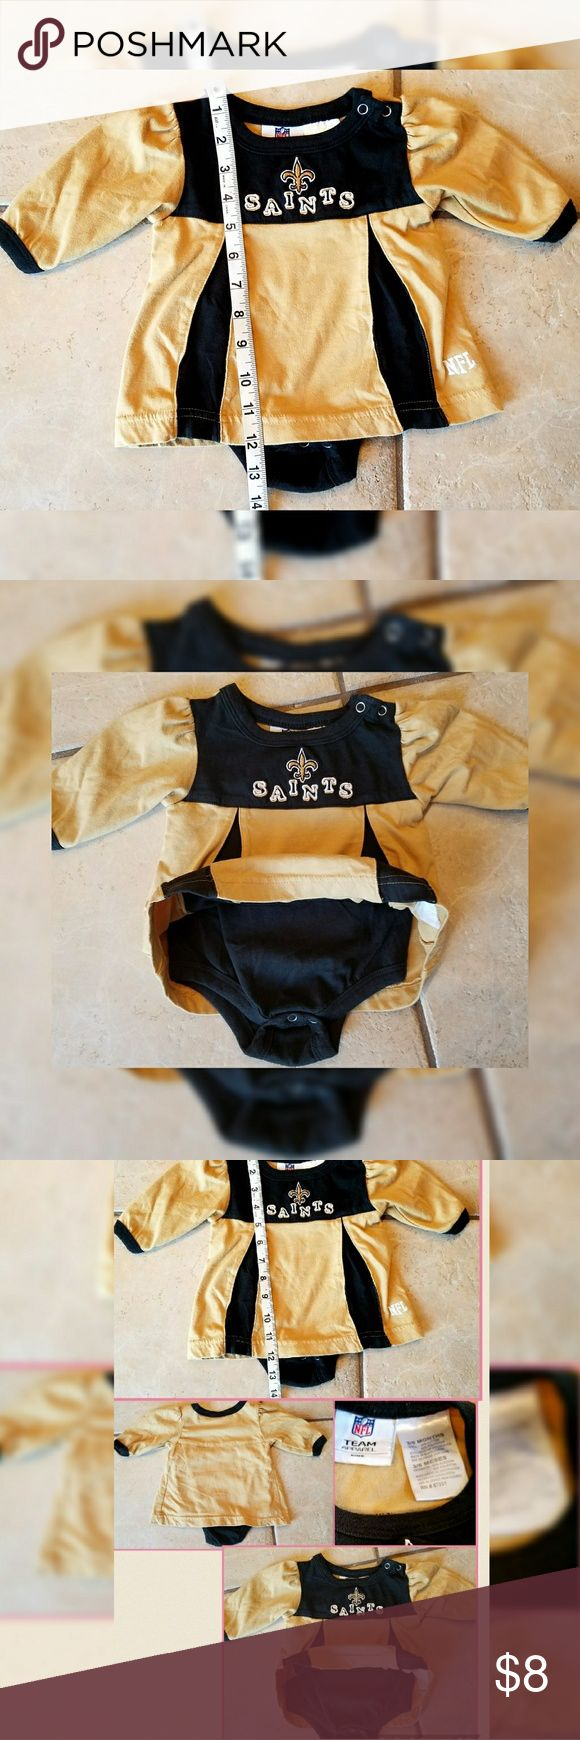 [NFL] New Orleans SAINTS 3 to 6 months NFL New Orleans SAINTS Onesie Long Sleeve. Size 3 to 6 months. Great Condition No flaws noted. NFL  One Pieces